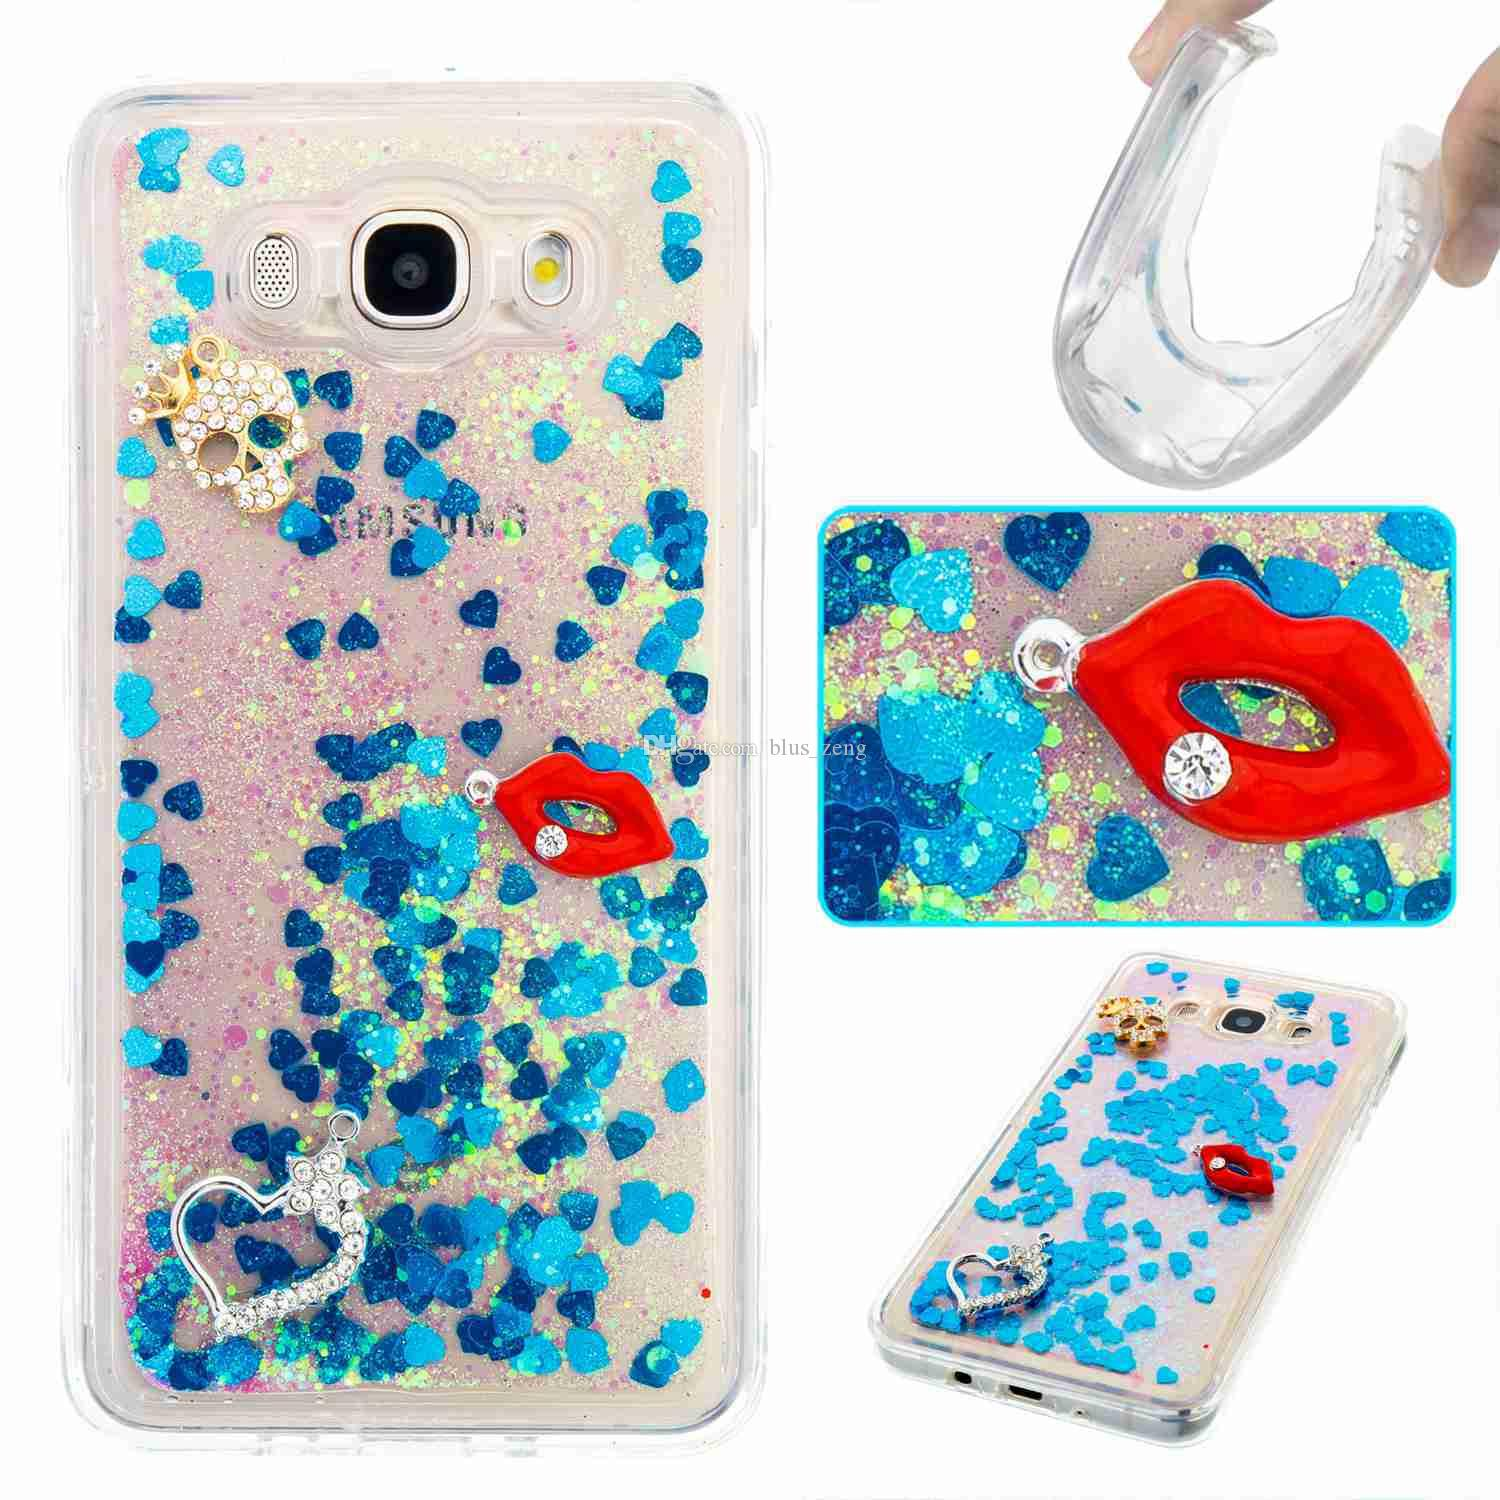 Quicksand Moving Bling Glitter Floating Dynamic Flowing Liquid Tpu Soft Transparent Case For Samsung Galaxy J3 J5 J7 Prime A3 A5 2017 J710 Cell Phone Covers